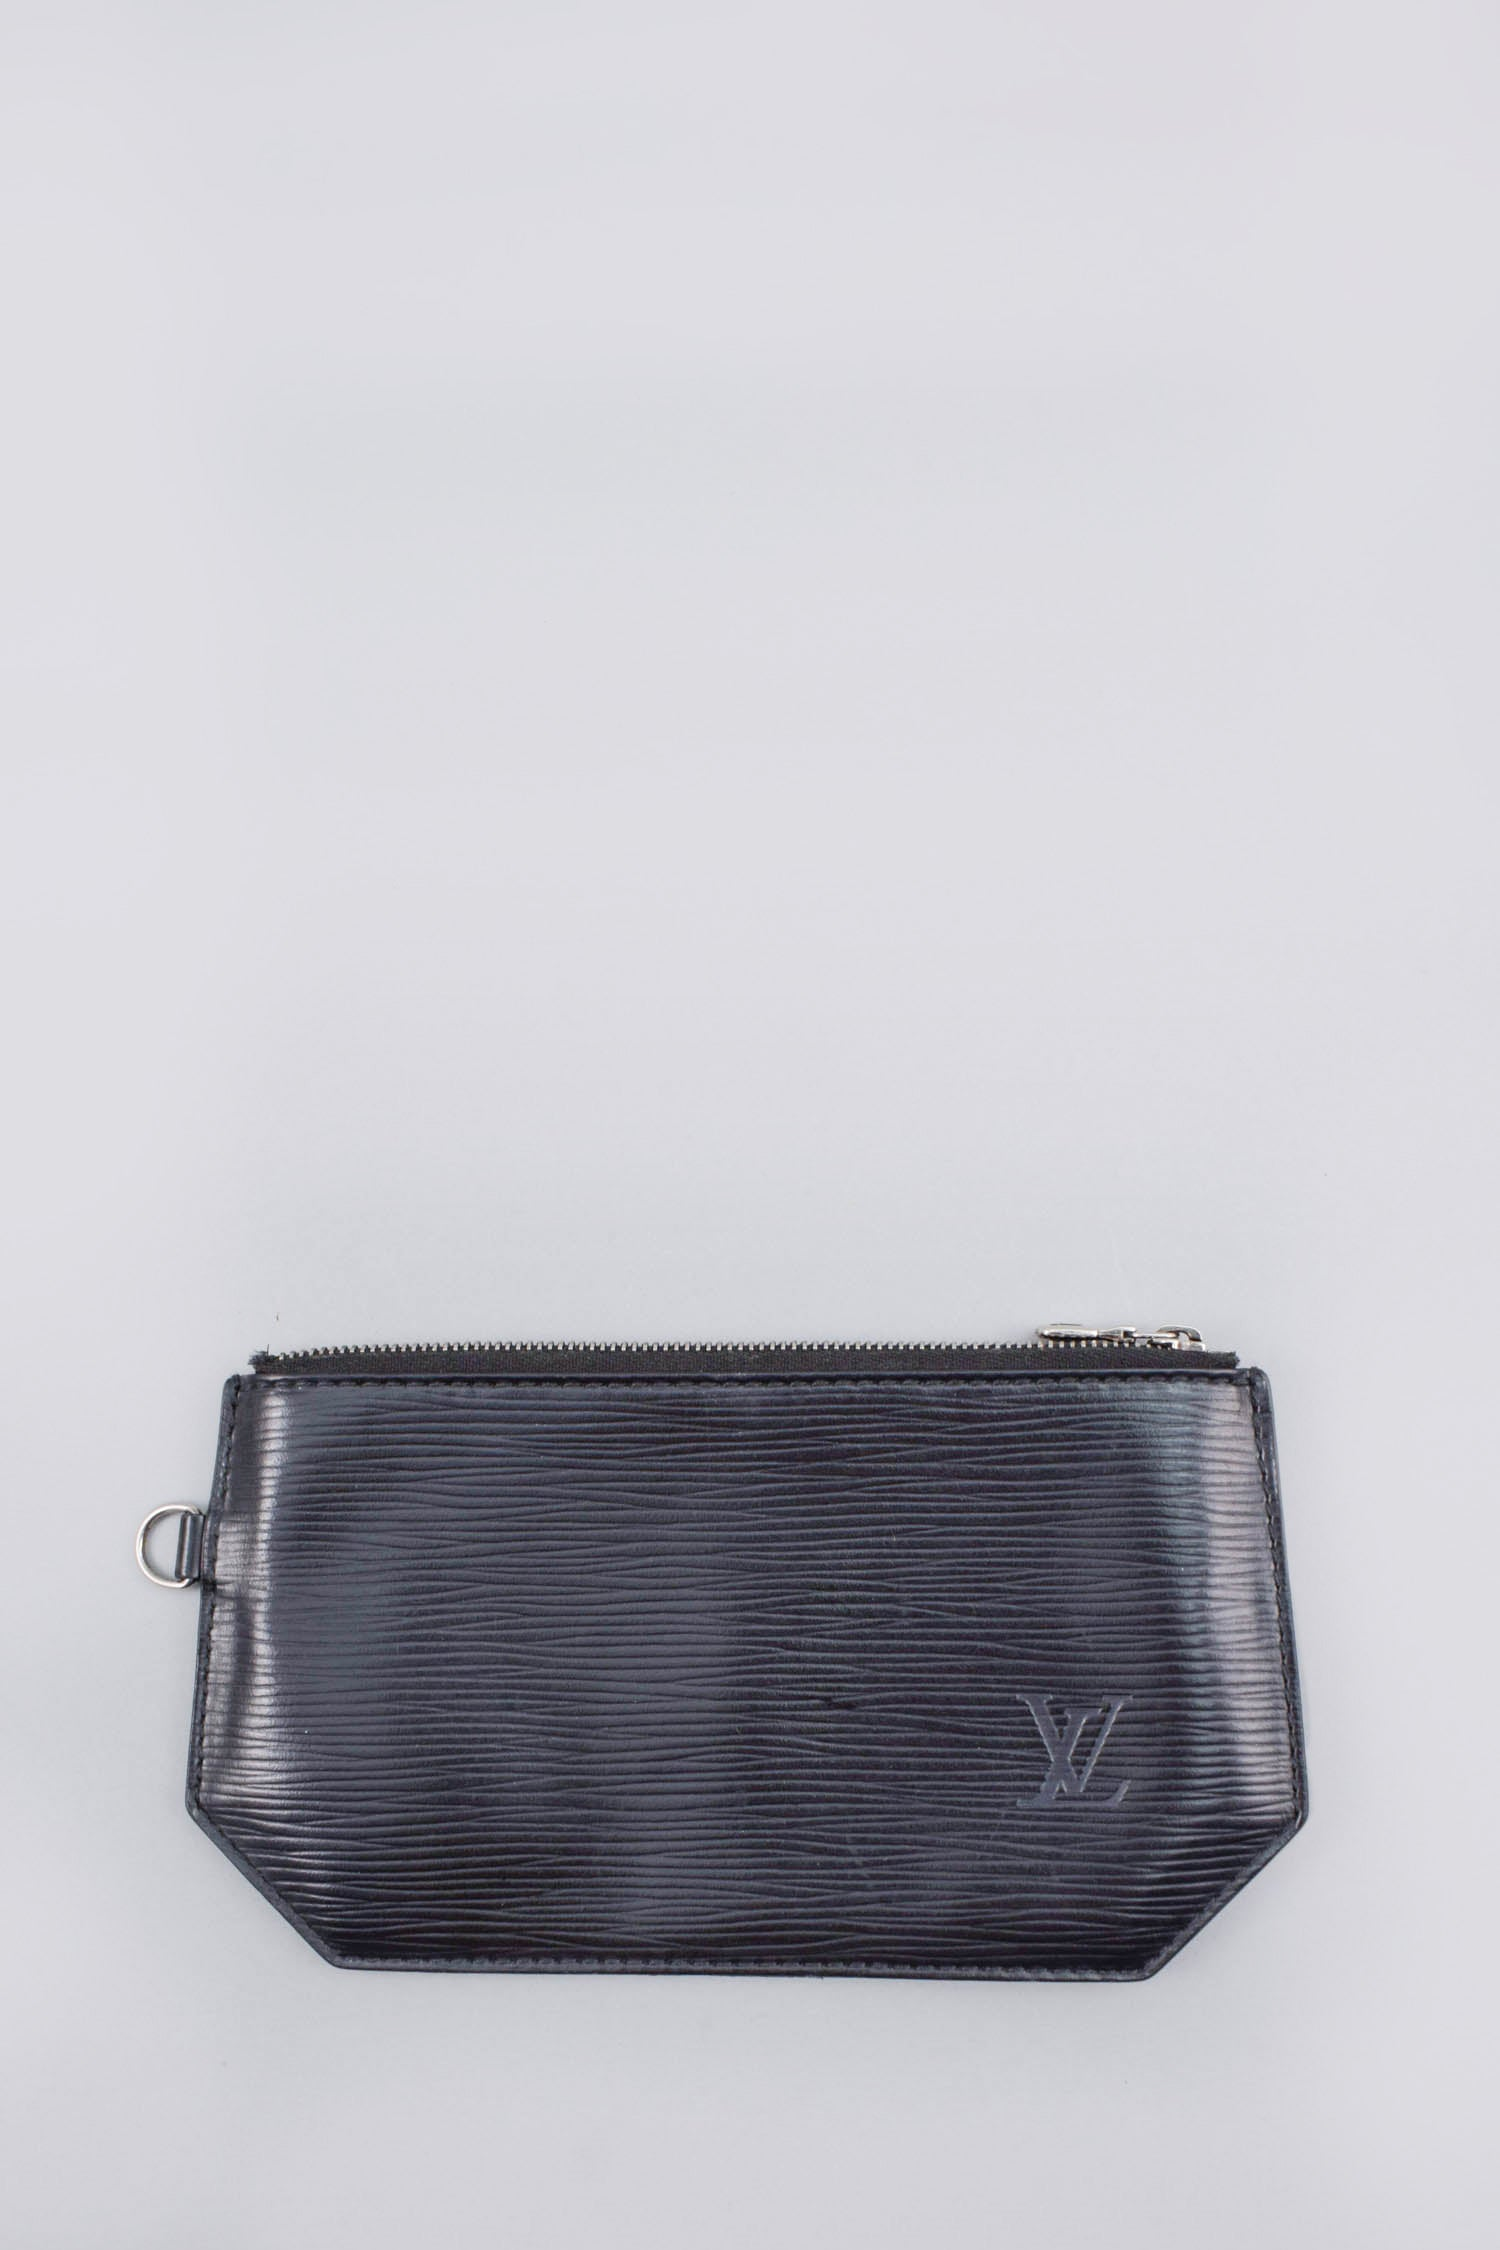 Louis Vuitton Black Epi Sac A Dos Shoulder Bag